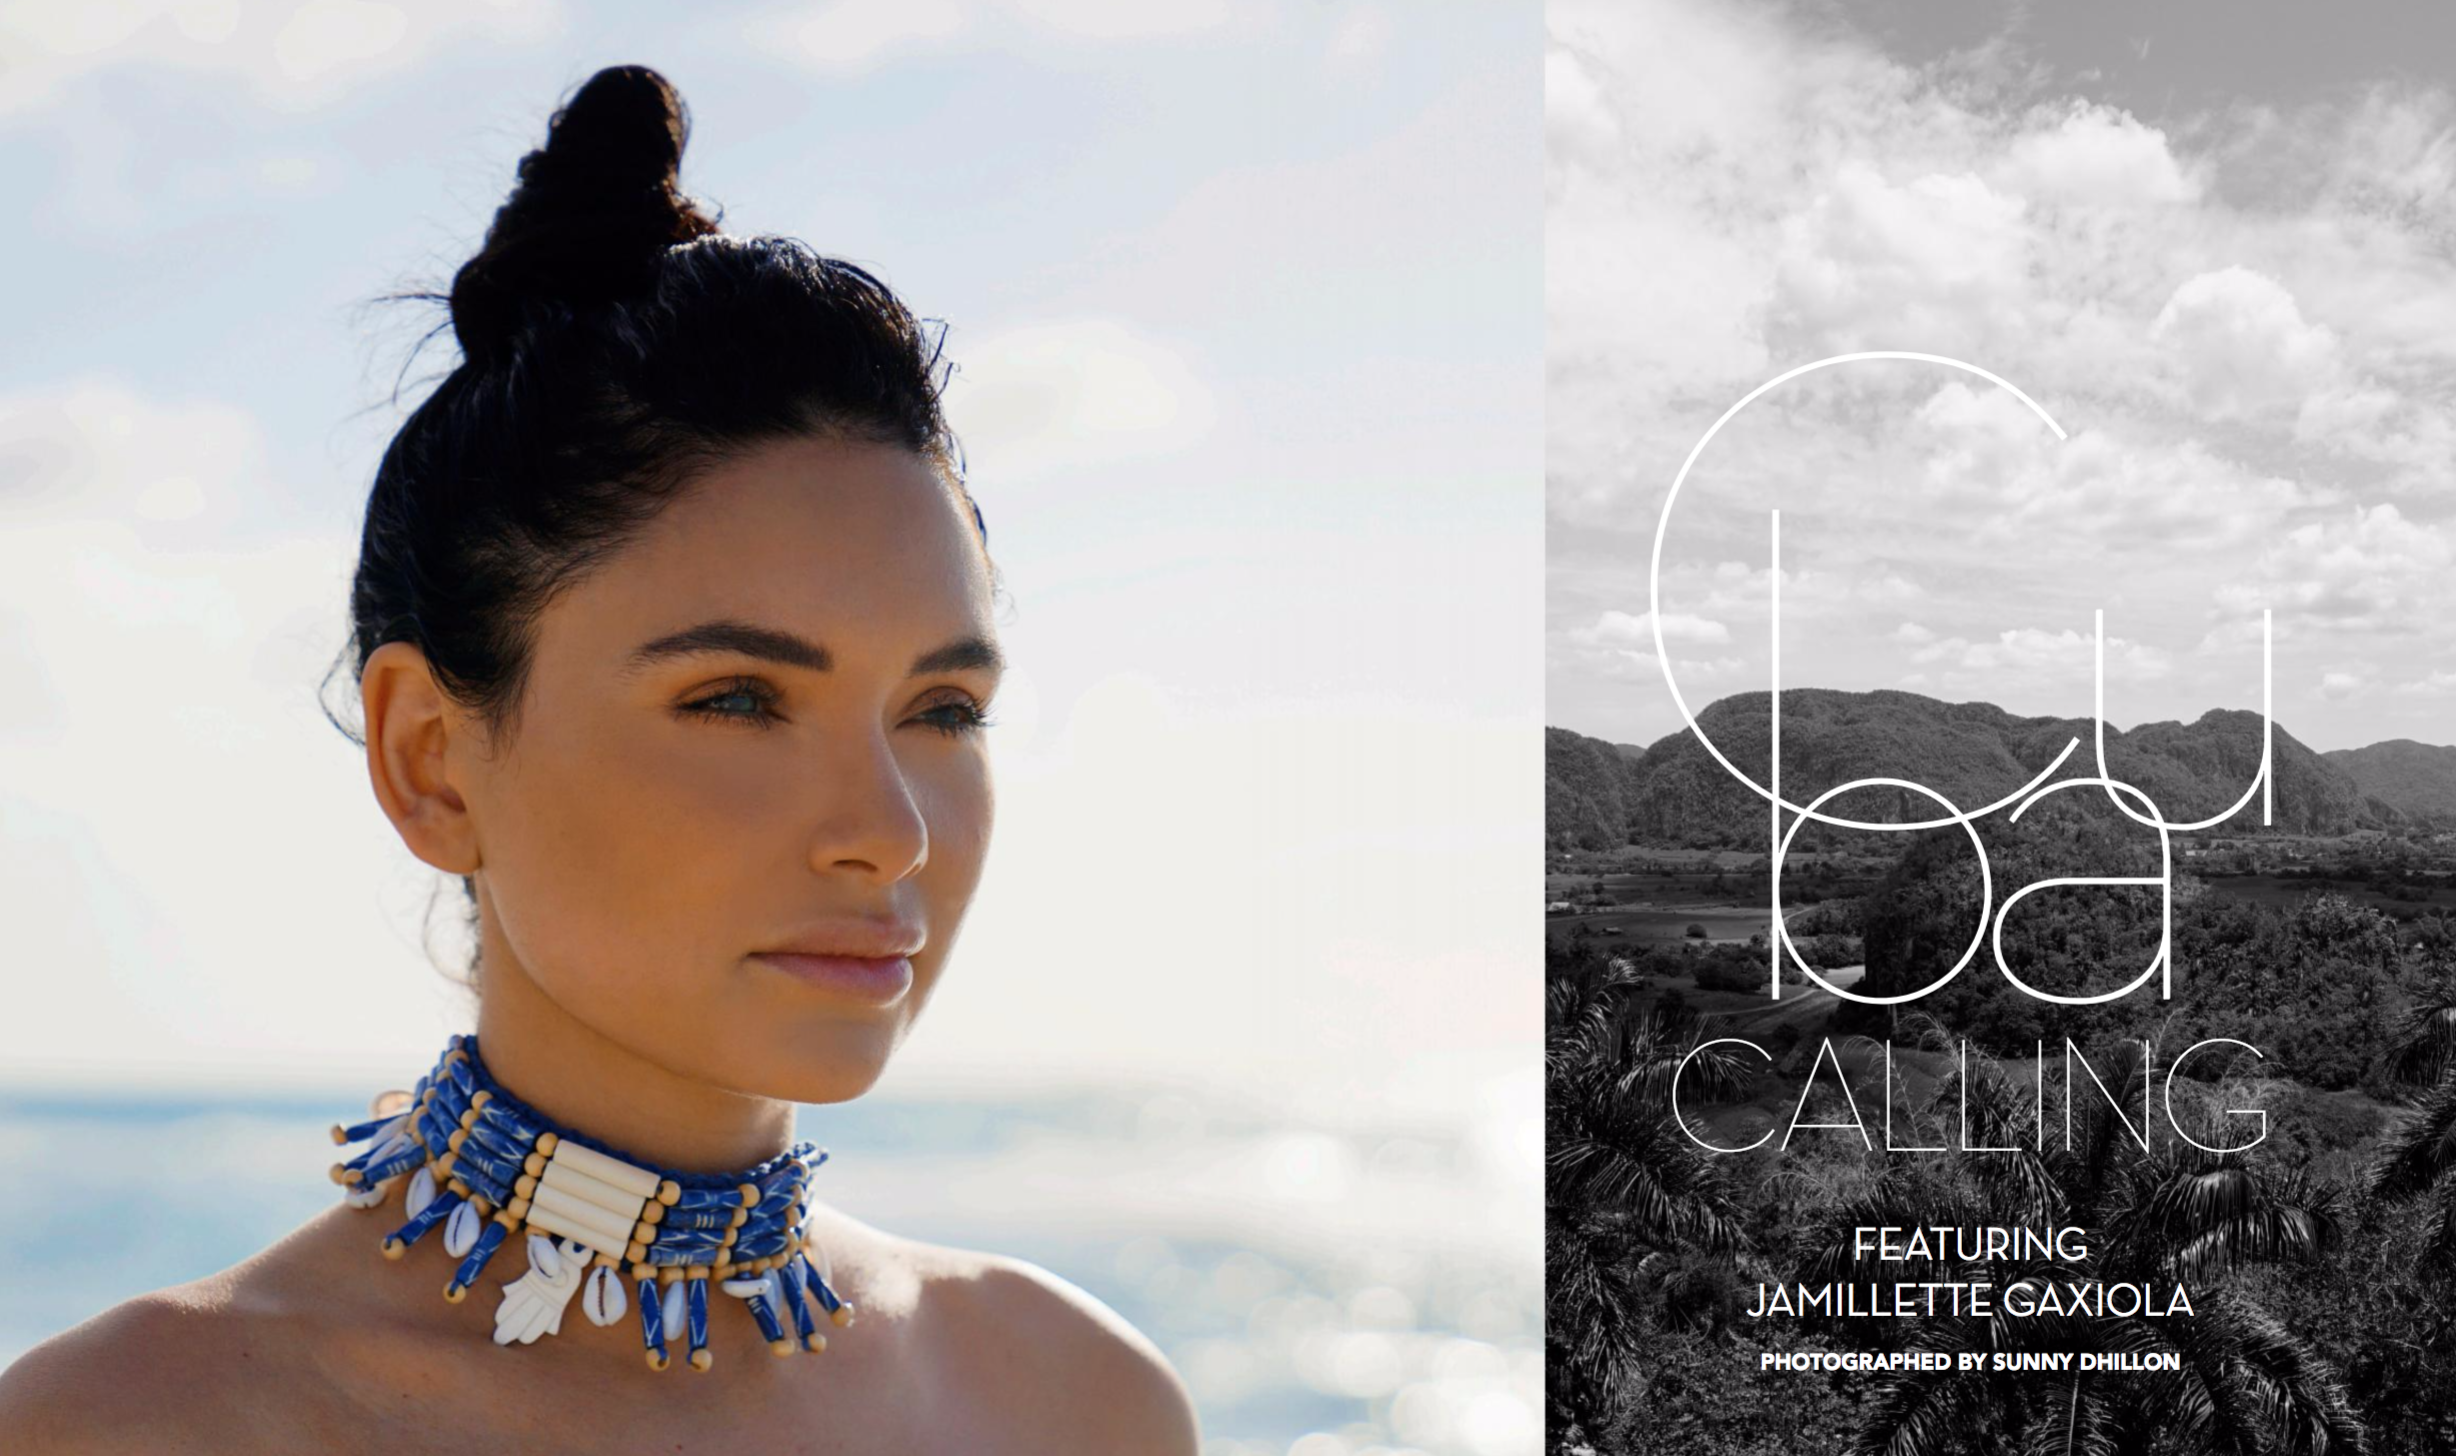 Cuba Calling Featuring Jamillette Gaxiola | Photos By Sunny Dhillon